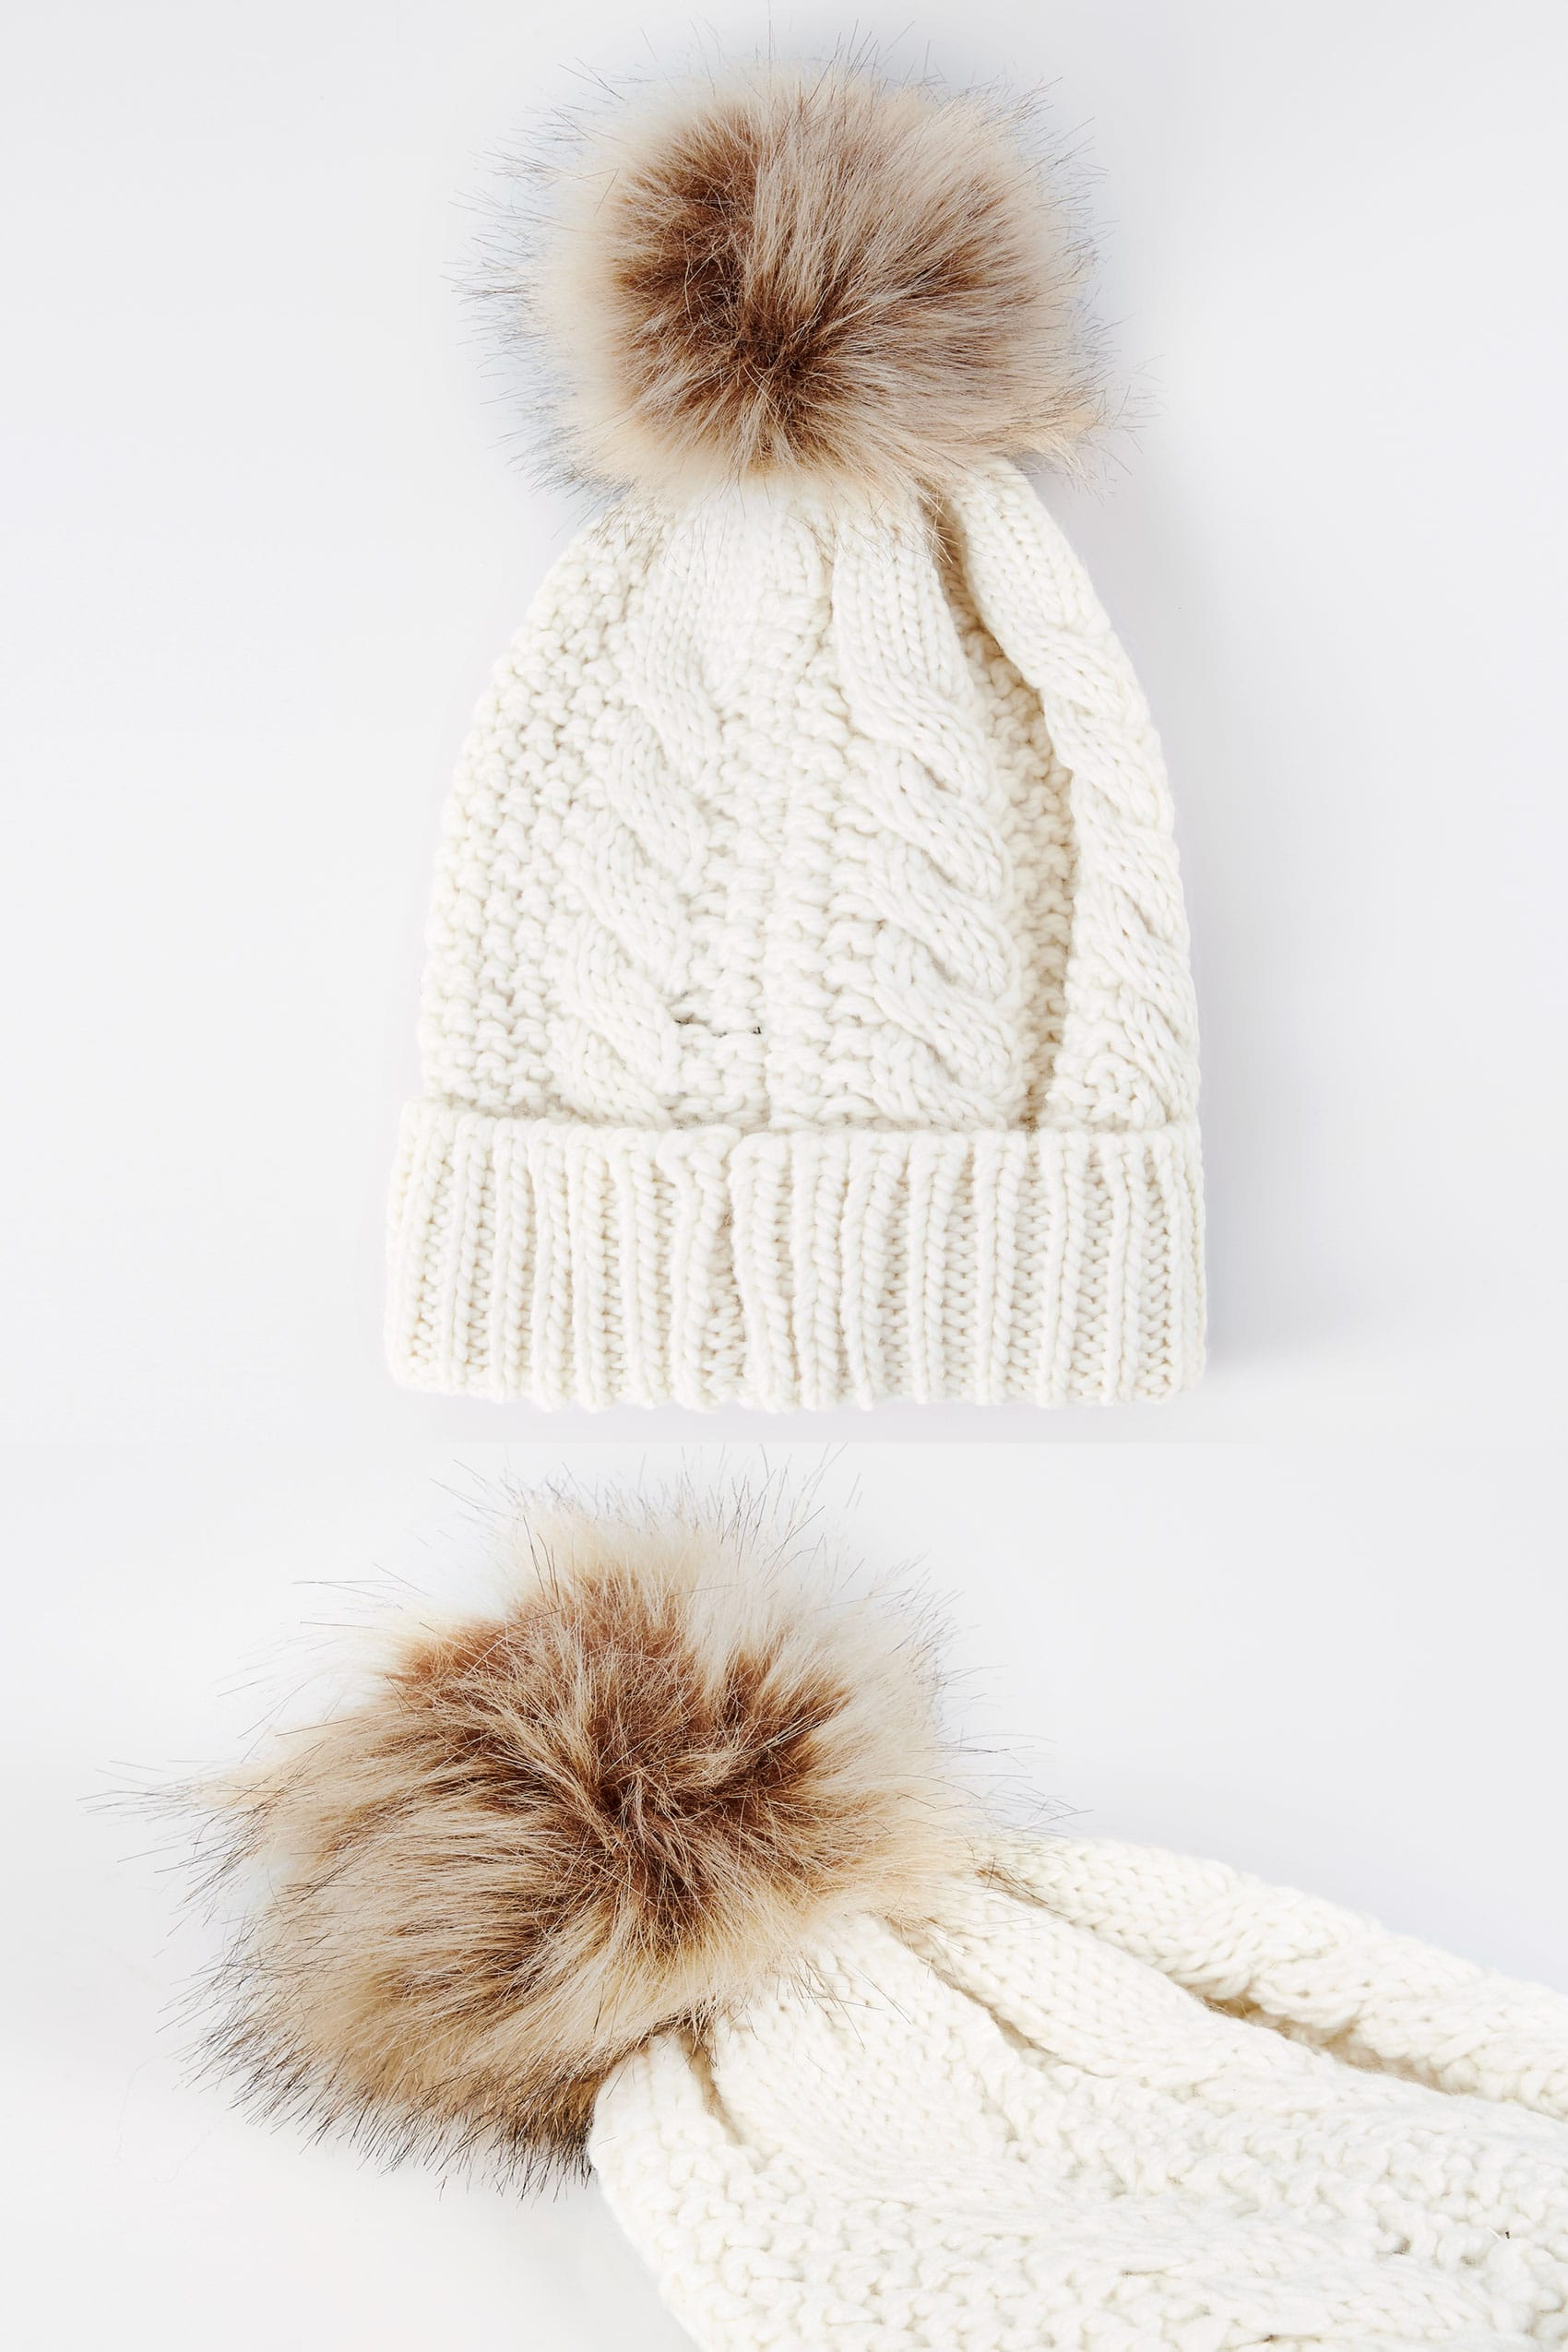 Cream cable knit hat with pom pom for Buy here pay later